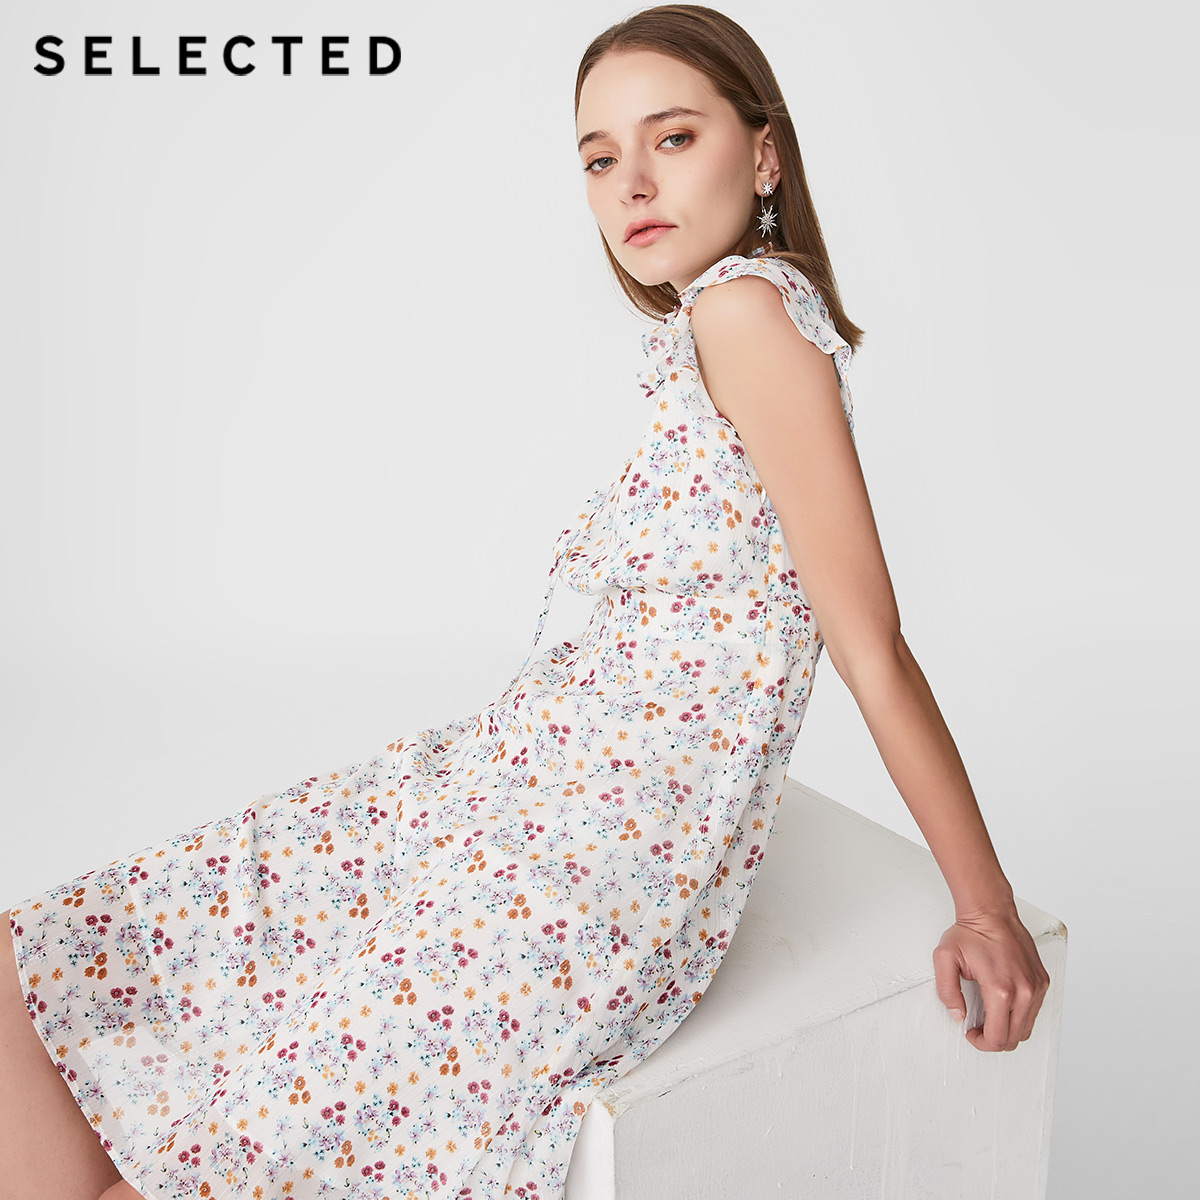 SELECTED Frilled Edges Print Lace-up Dress S 41922J543